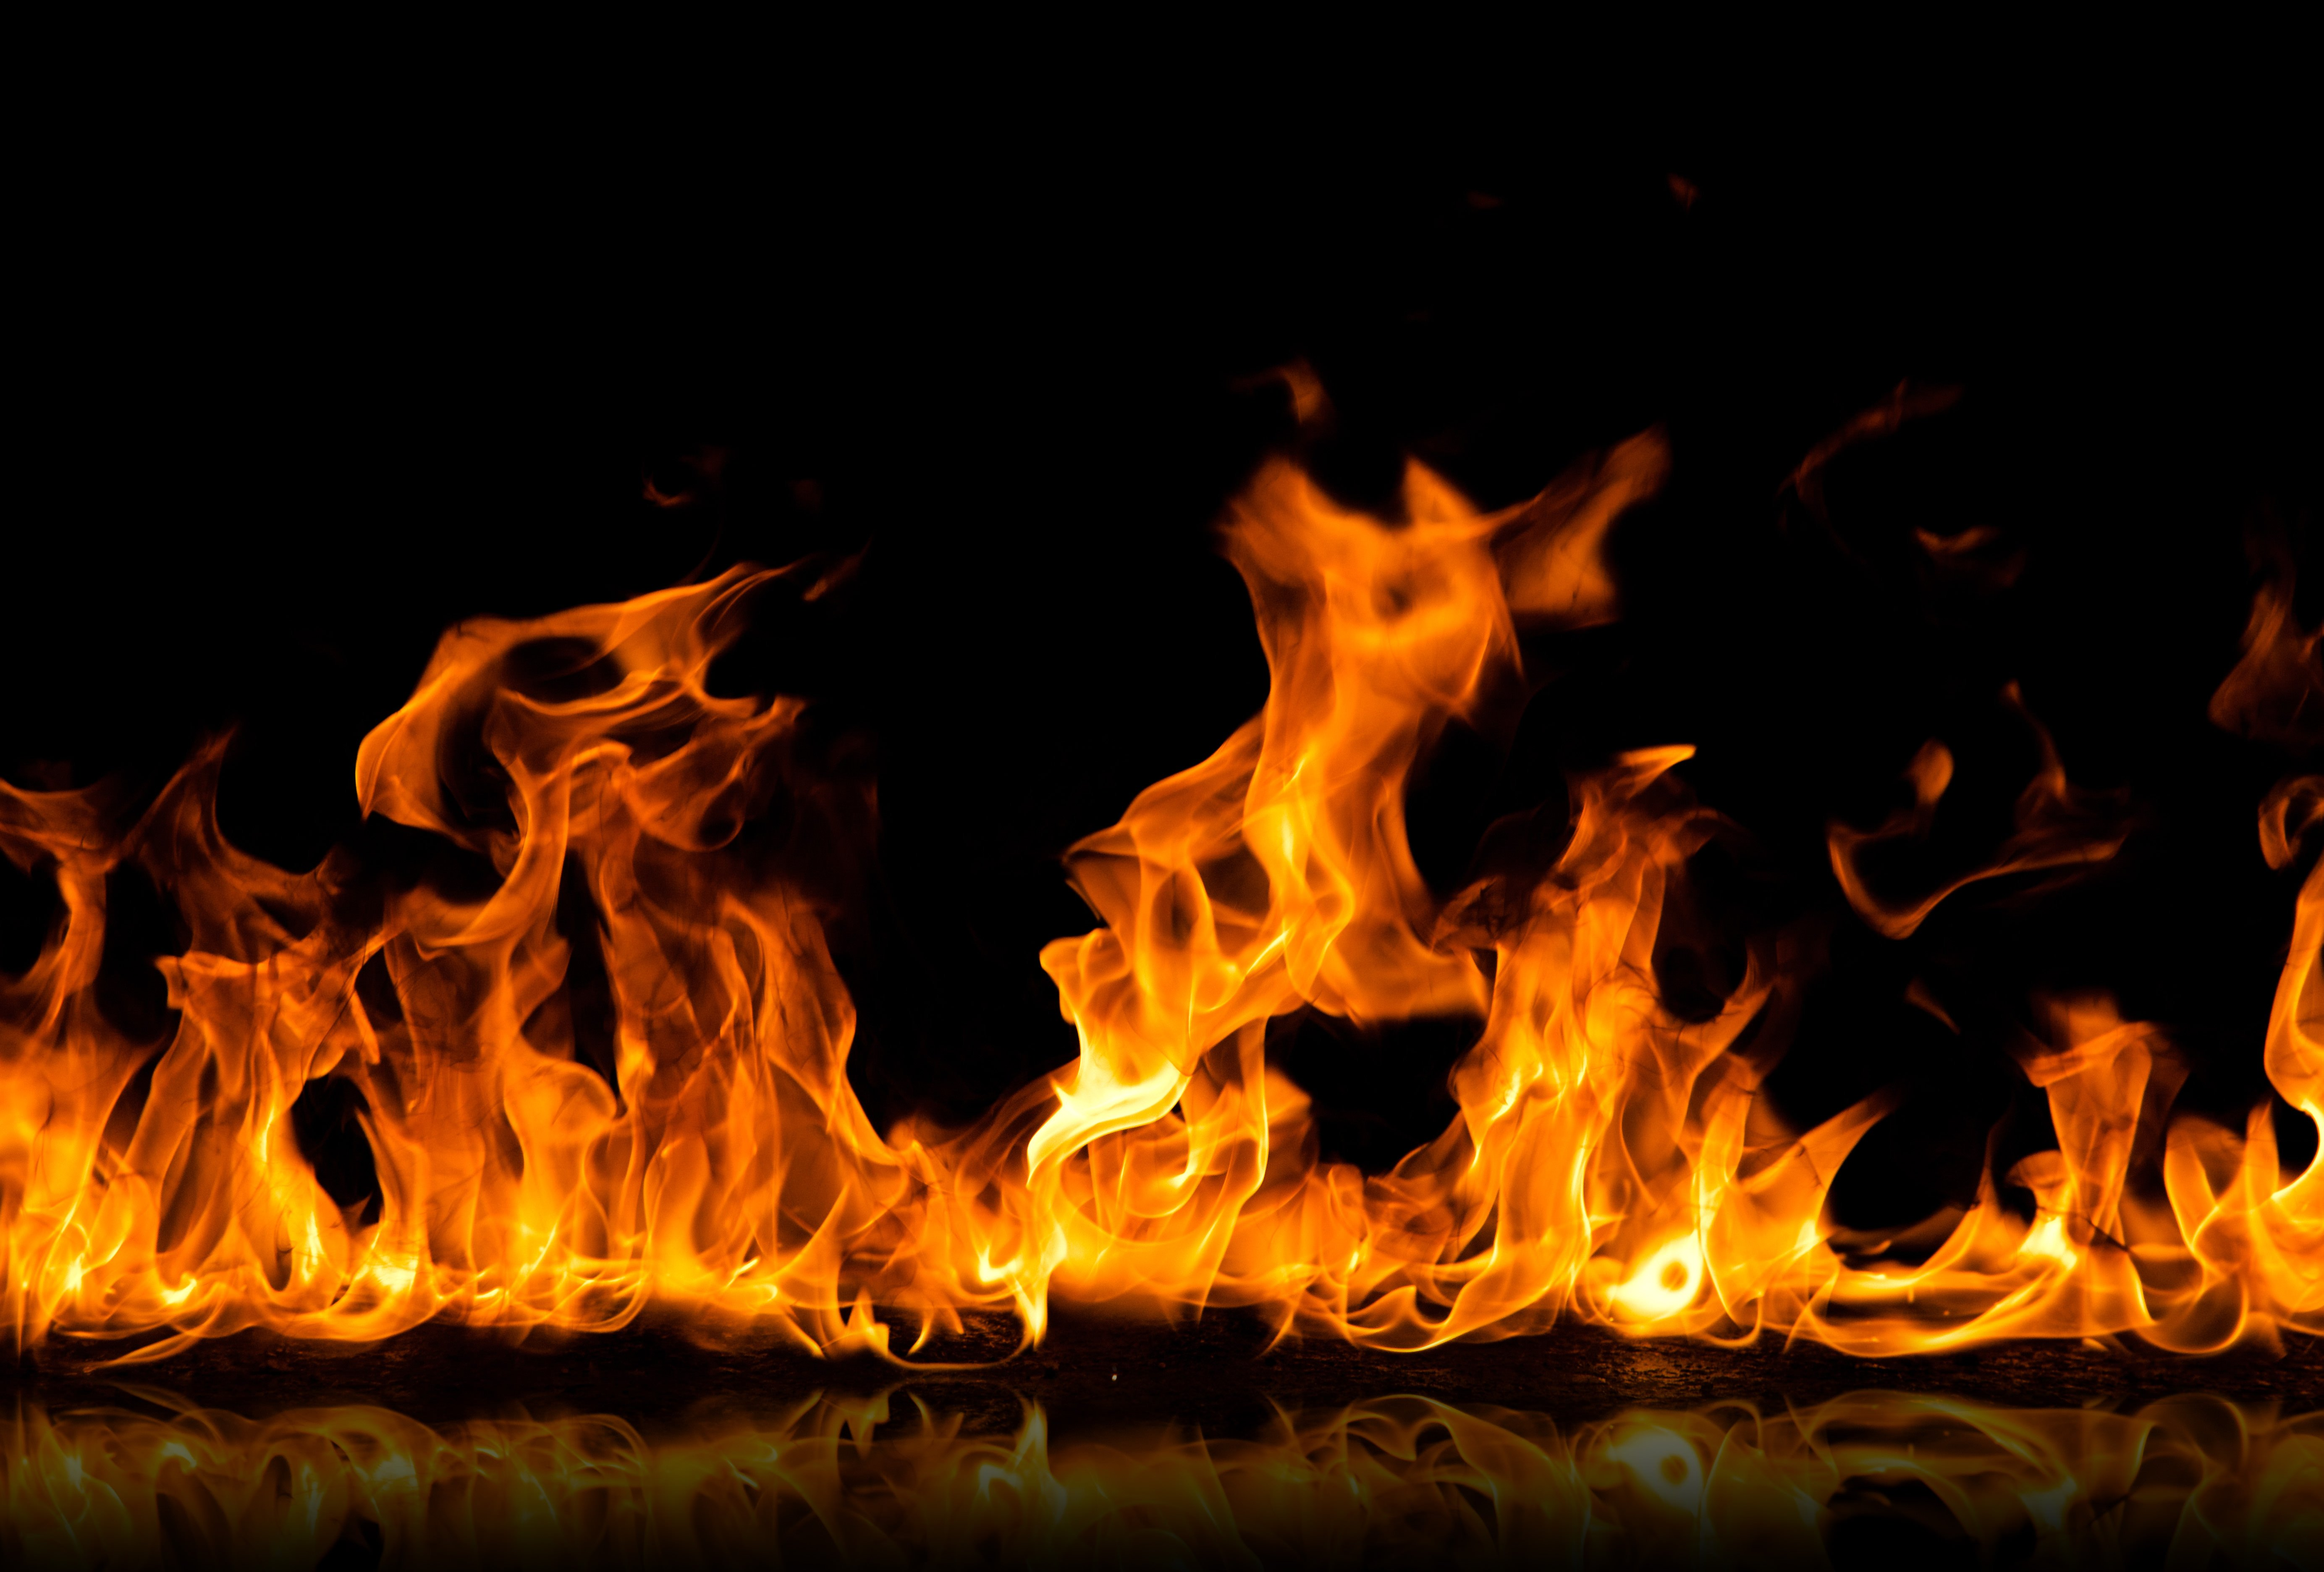 Beach Fire Wallpaper Free: Fire Wallpapers, Photos And Desktop Backgrounds Up To 8K